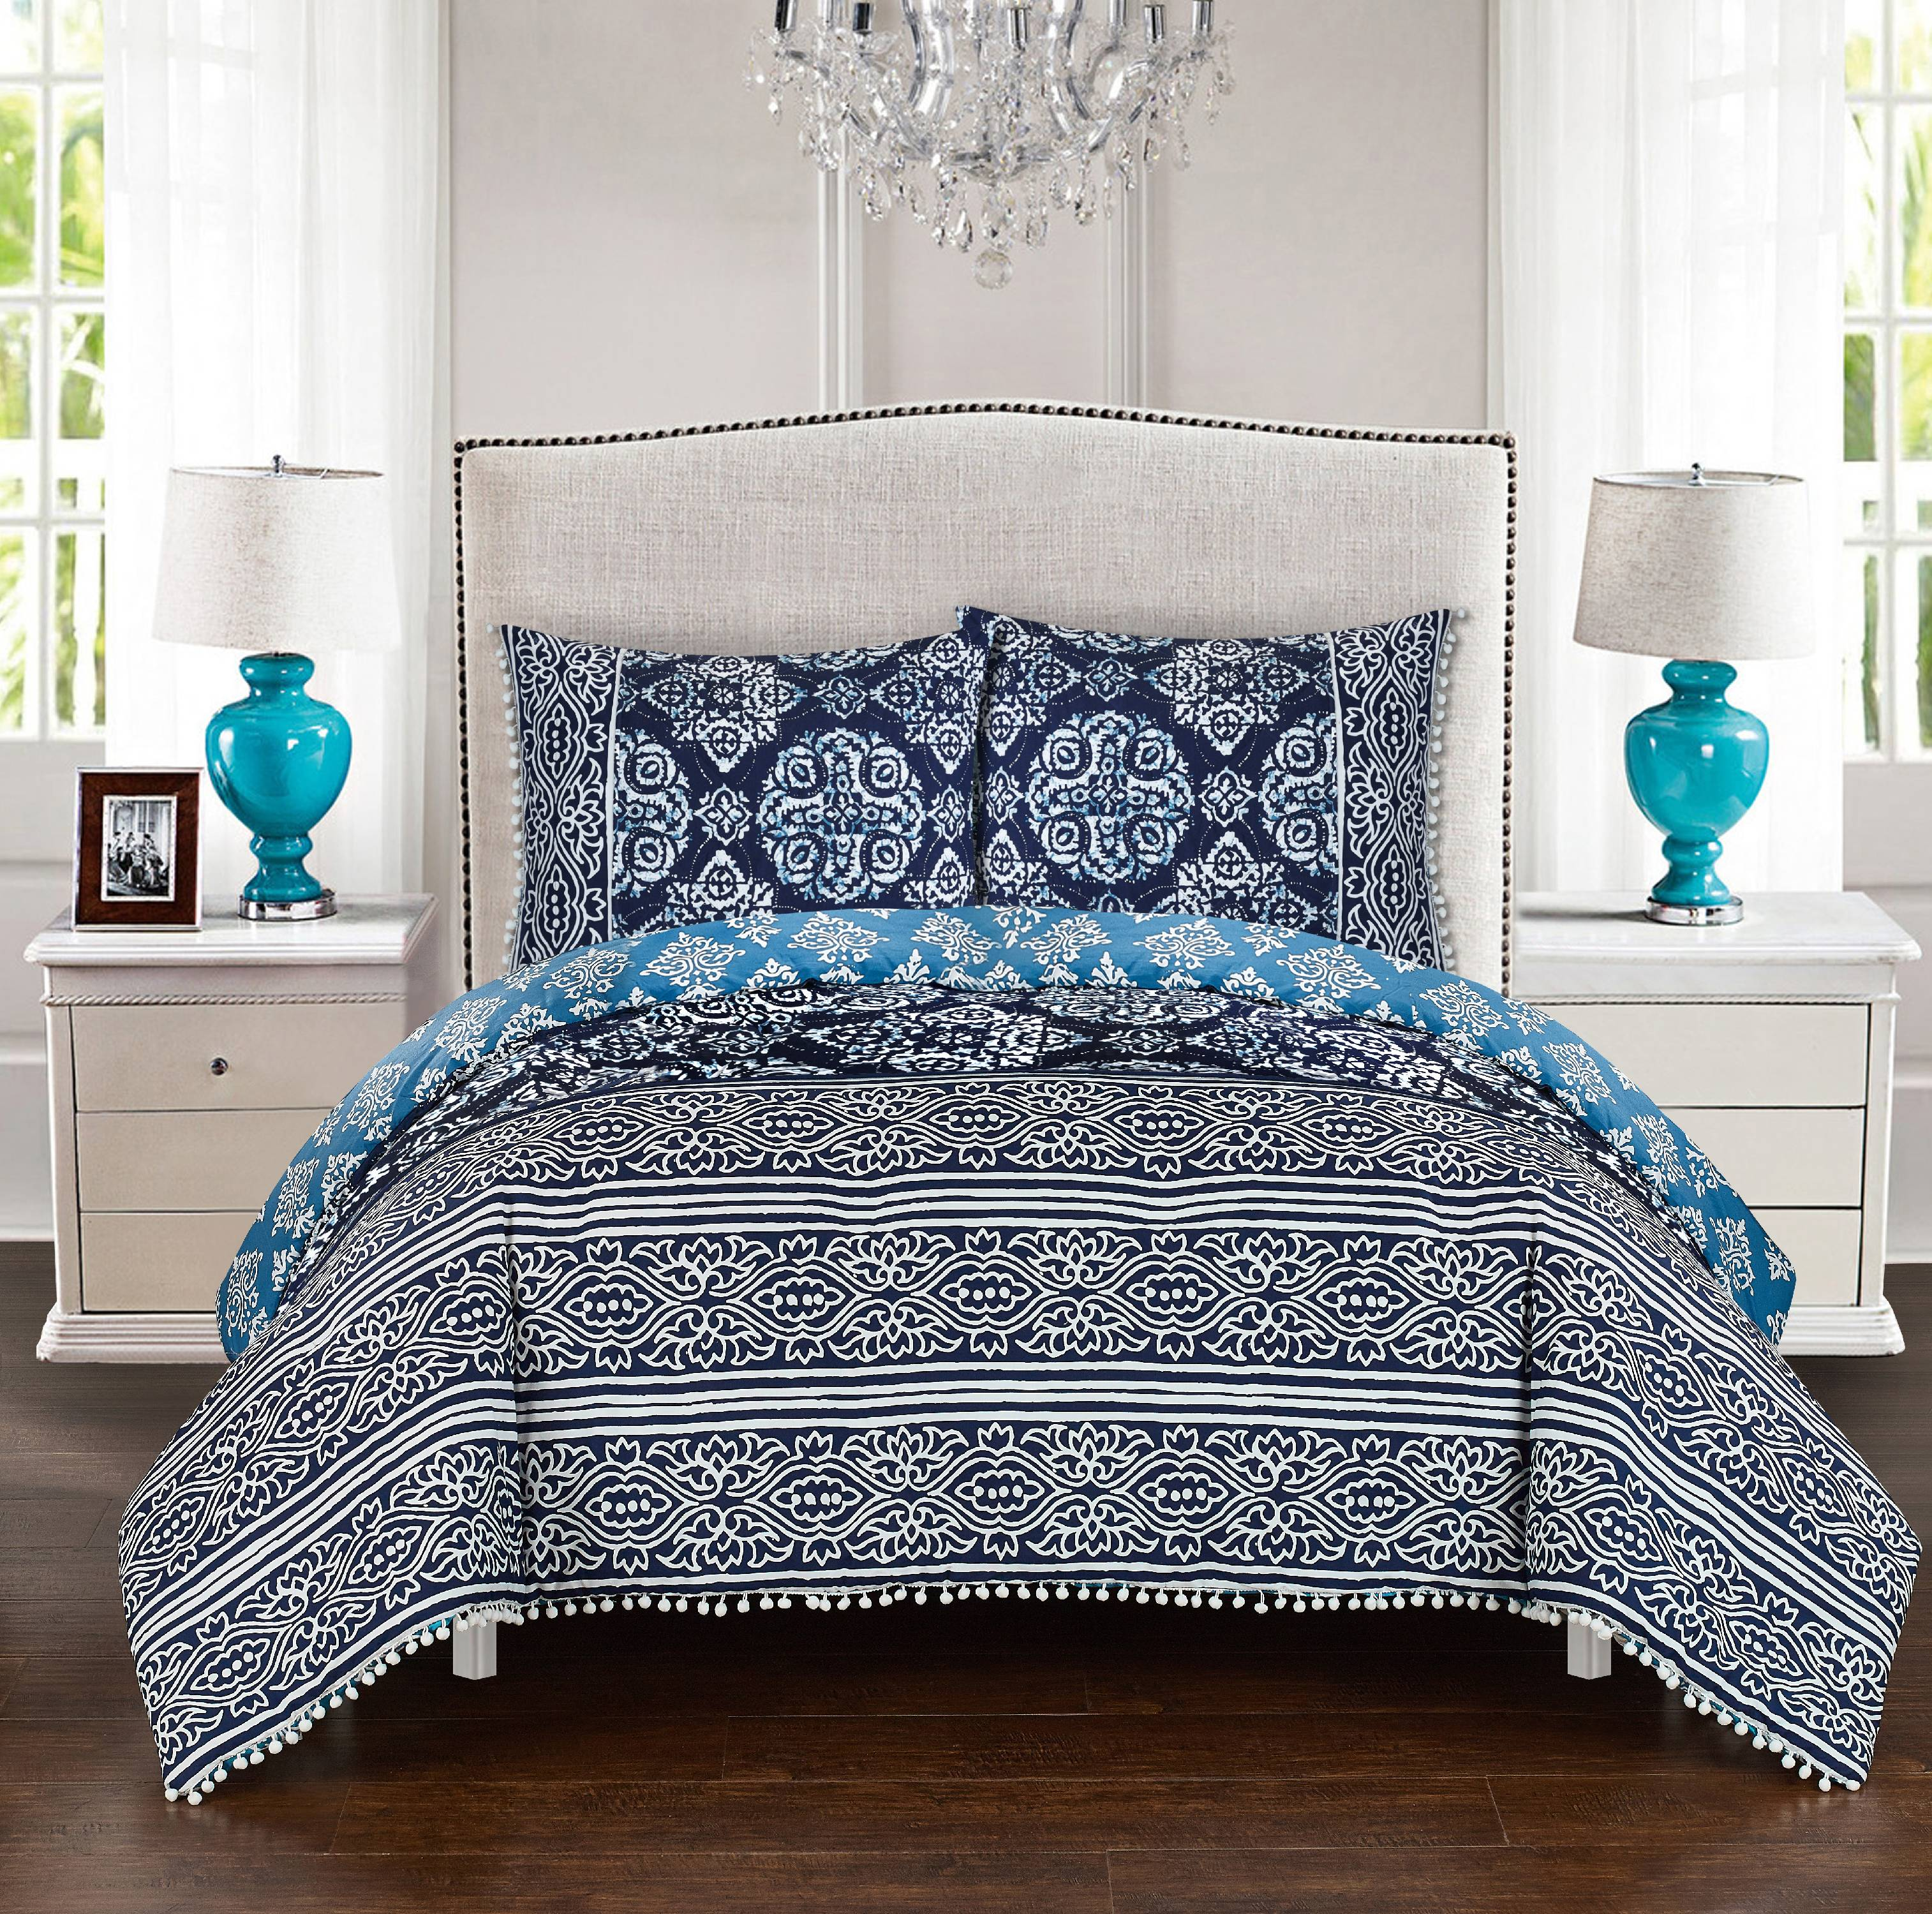 LUX-BED 2 Piece Peridot NEW!! LUX-BED COLLECTIONS!! 100% Cotton 200 Thread Count Shibori Peridot Reversible Pattern With Pom Pom Trim  Twin/Twin XL Comforter Set Navy With 1 Sham